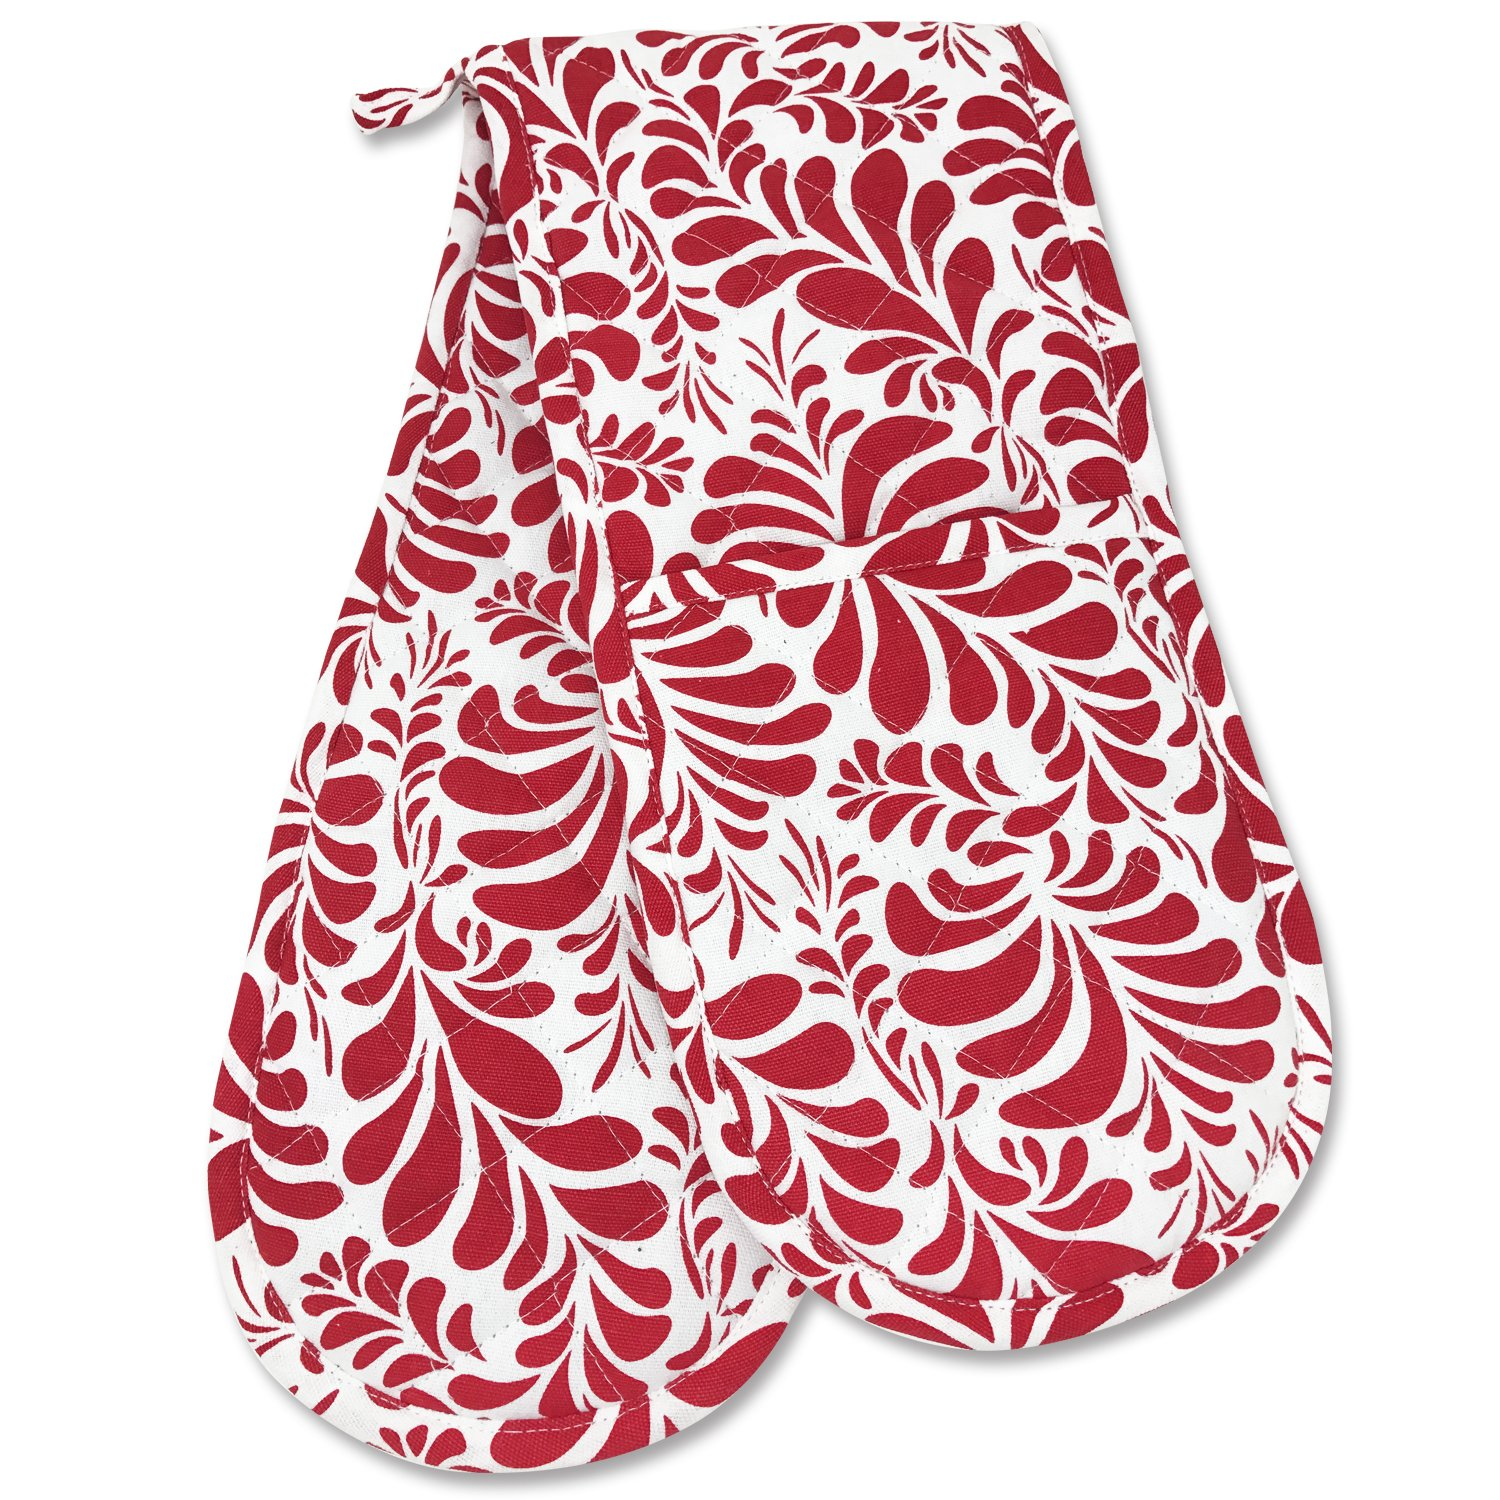 Smart Home, Pretty Red, 1 Piece, Long Double Oven Mitts Gloves, Heat Resistant, 100% Cotton, Extra Thick, Quilted